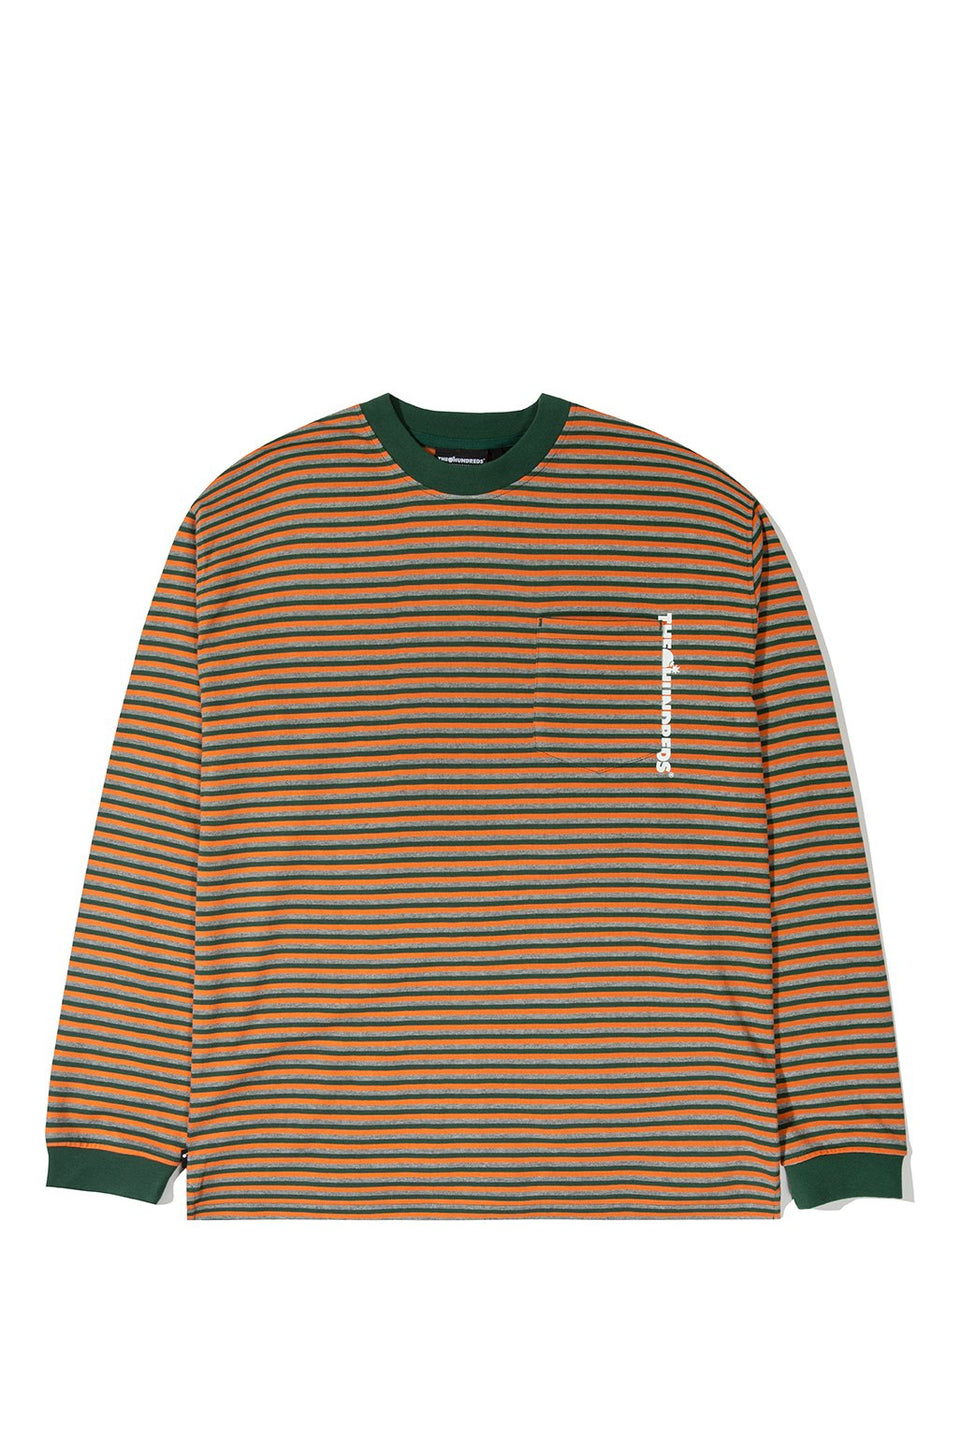 The Hundreds Jones L/S Shirt TOPS Hunter Green